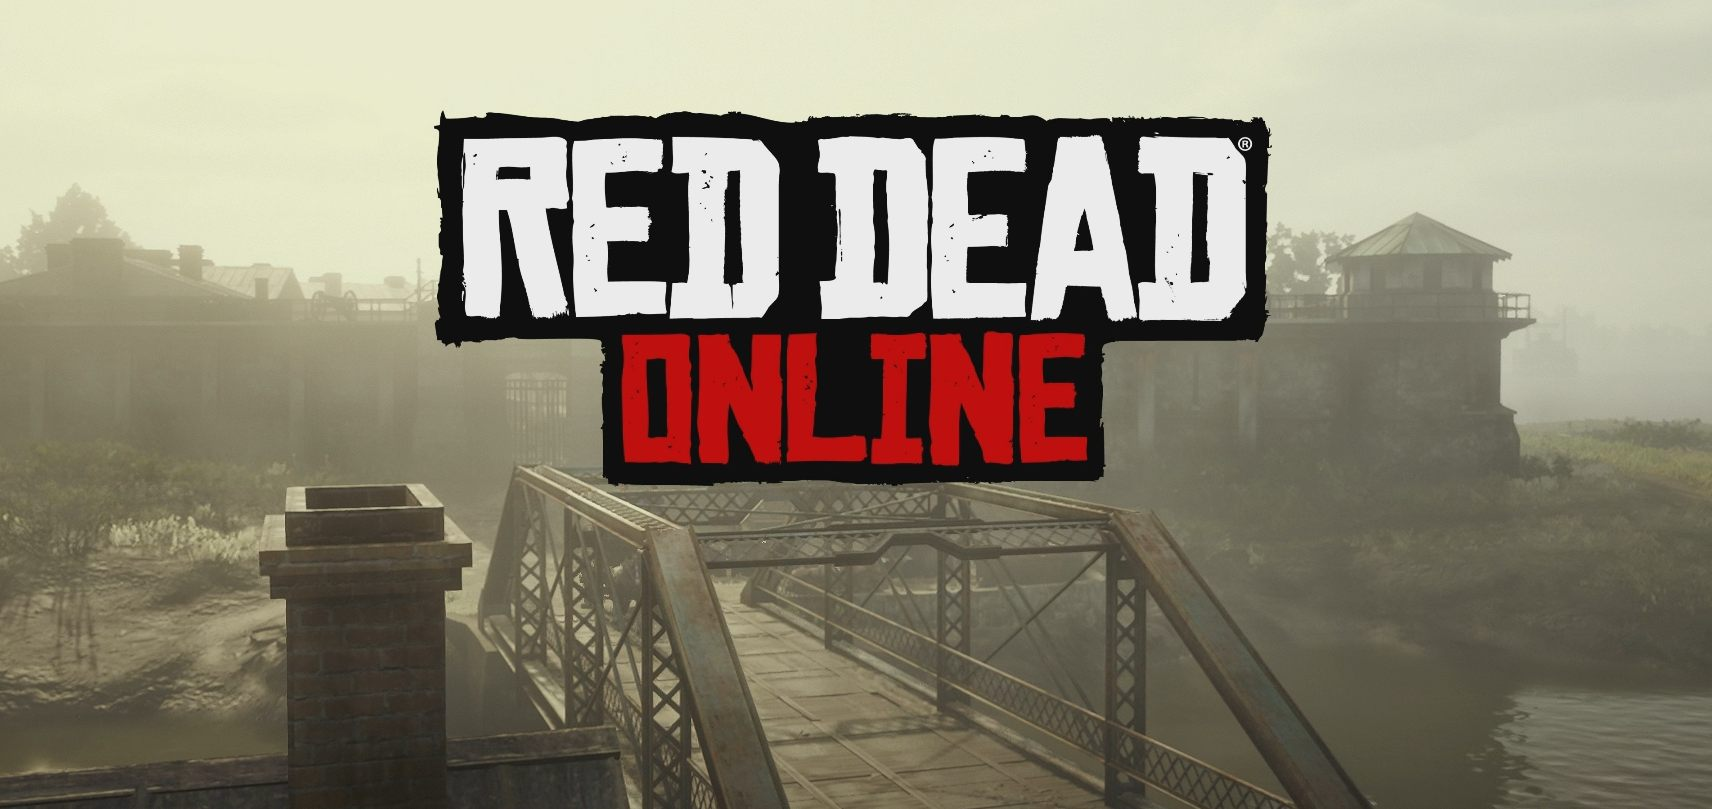 Red Dead Redemption 2 1 03 update patch notes | Shacknews